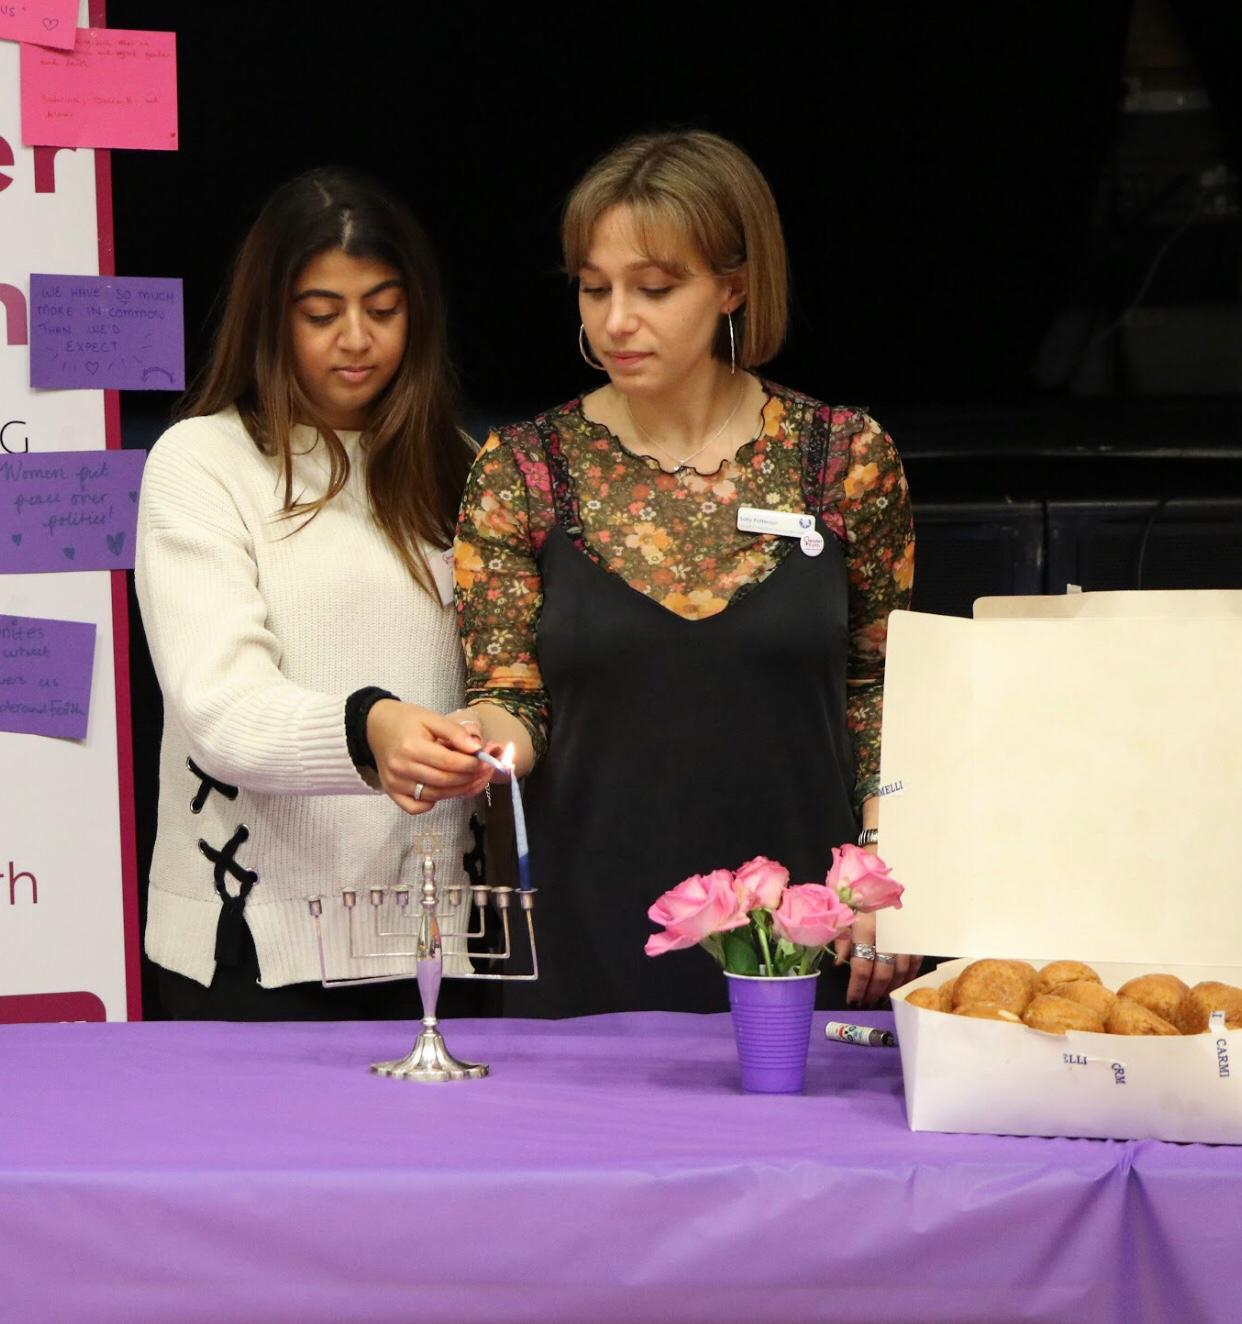 Organisers-Sally-Patterson-and-Saha-Habib-light-the-Chanukah-Menorah